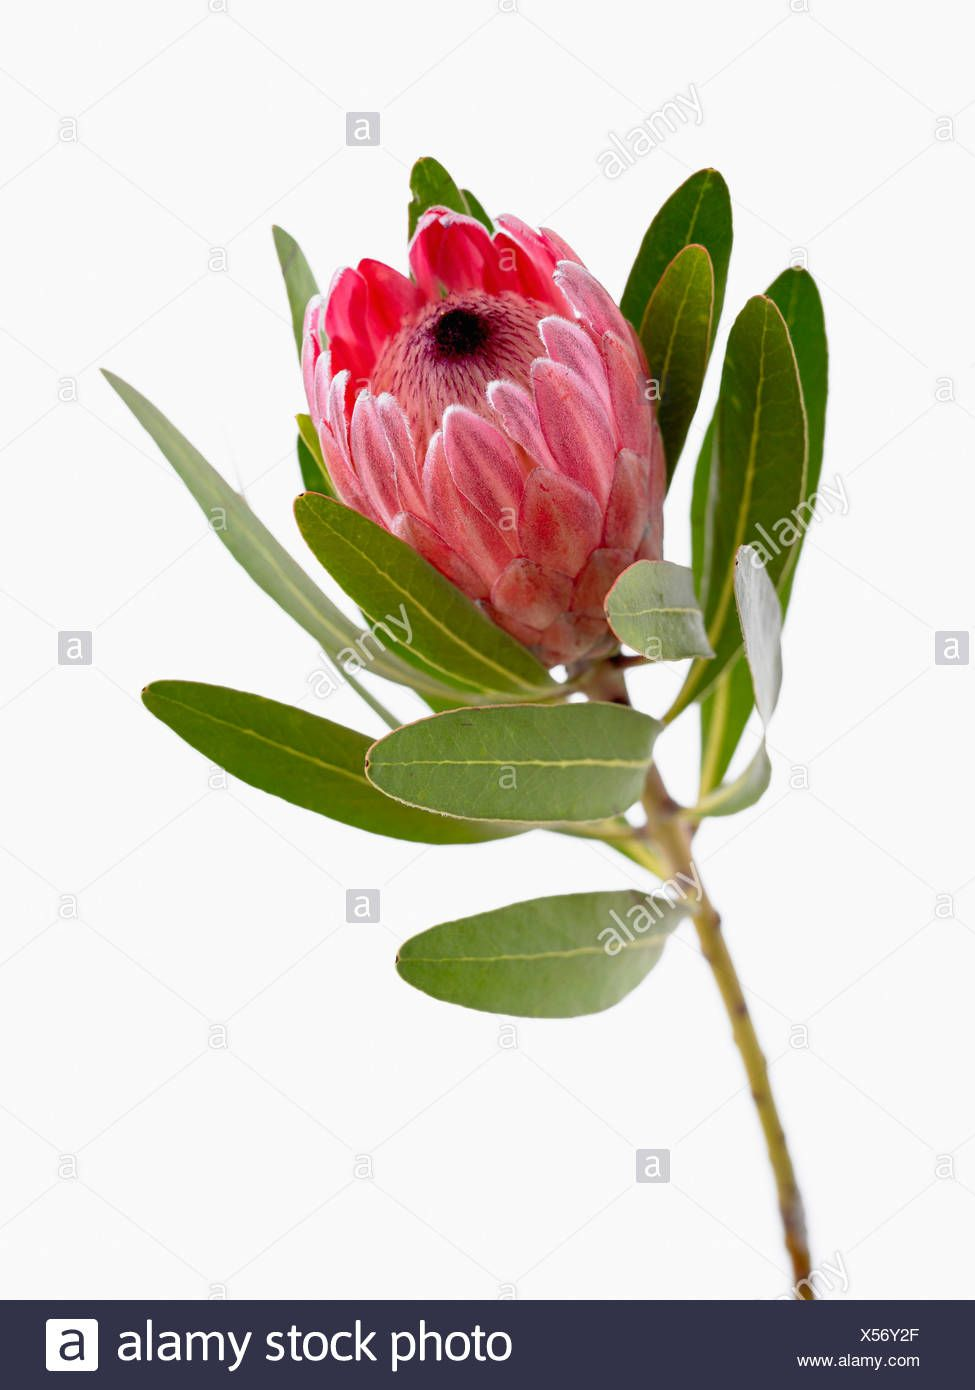 Protea Neriifolia X Susannae Pink Ice Single Flower On Leafy Stem Against A White Background Stock Photo 278592119 In 2020 Single Flower Flowers White Background